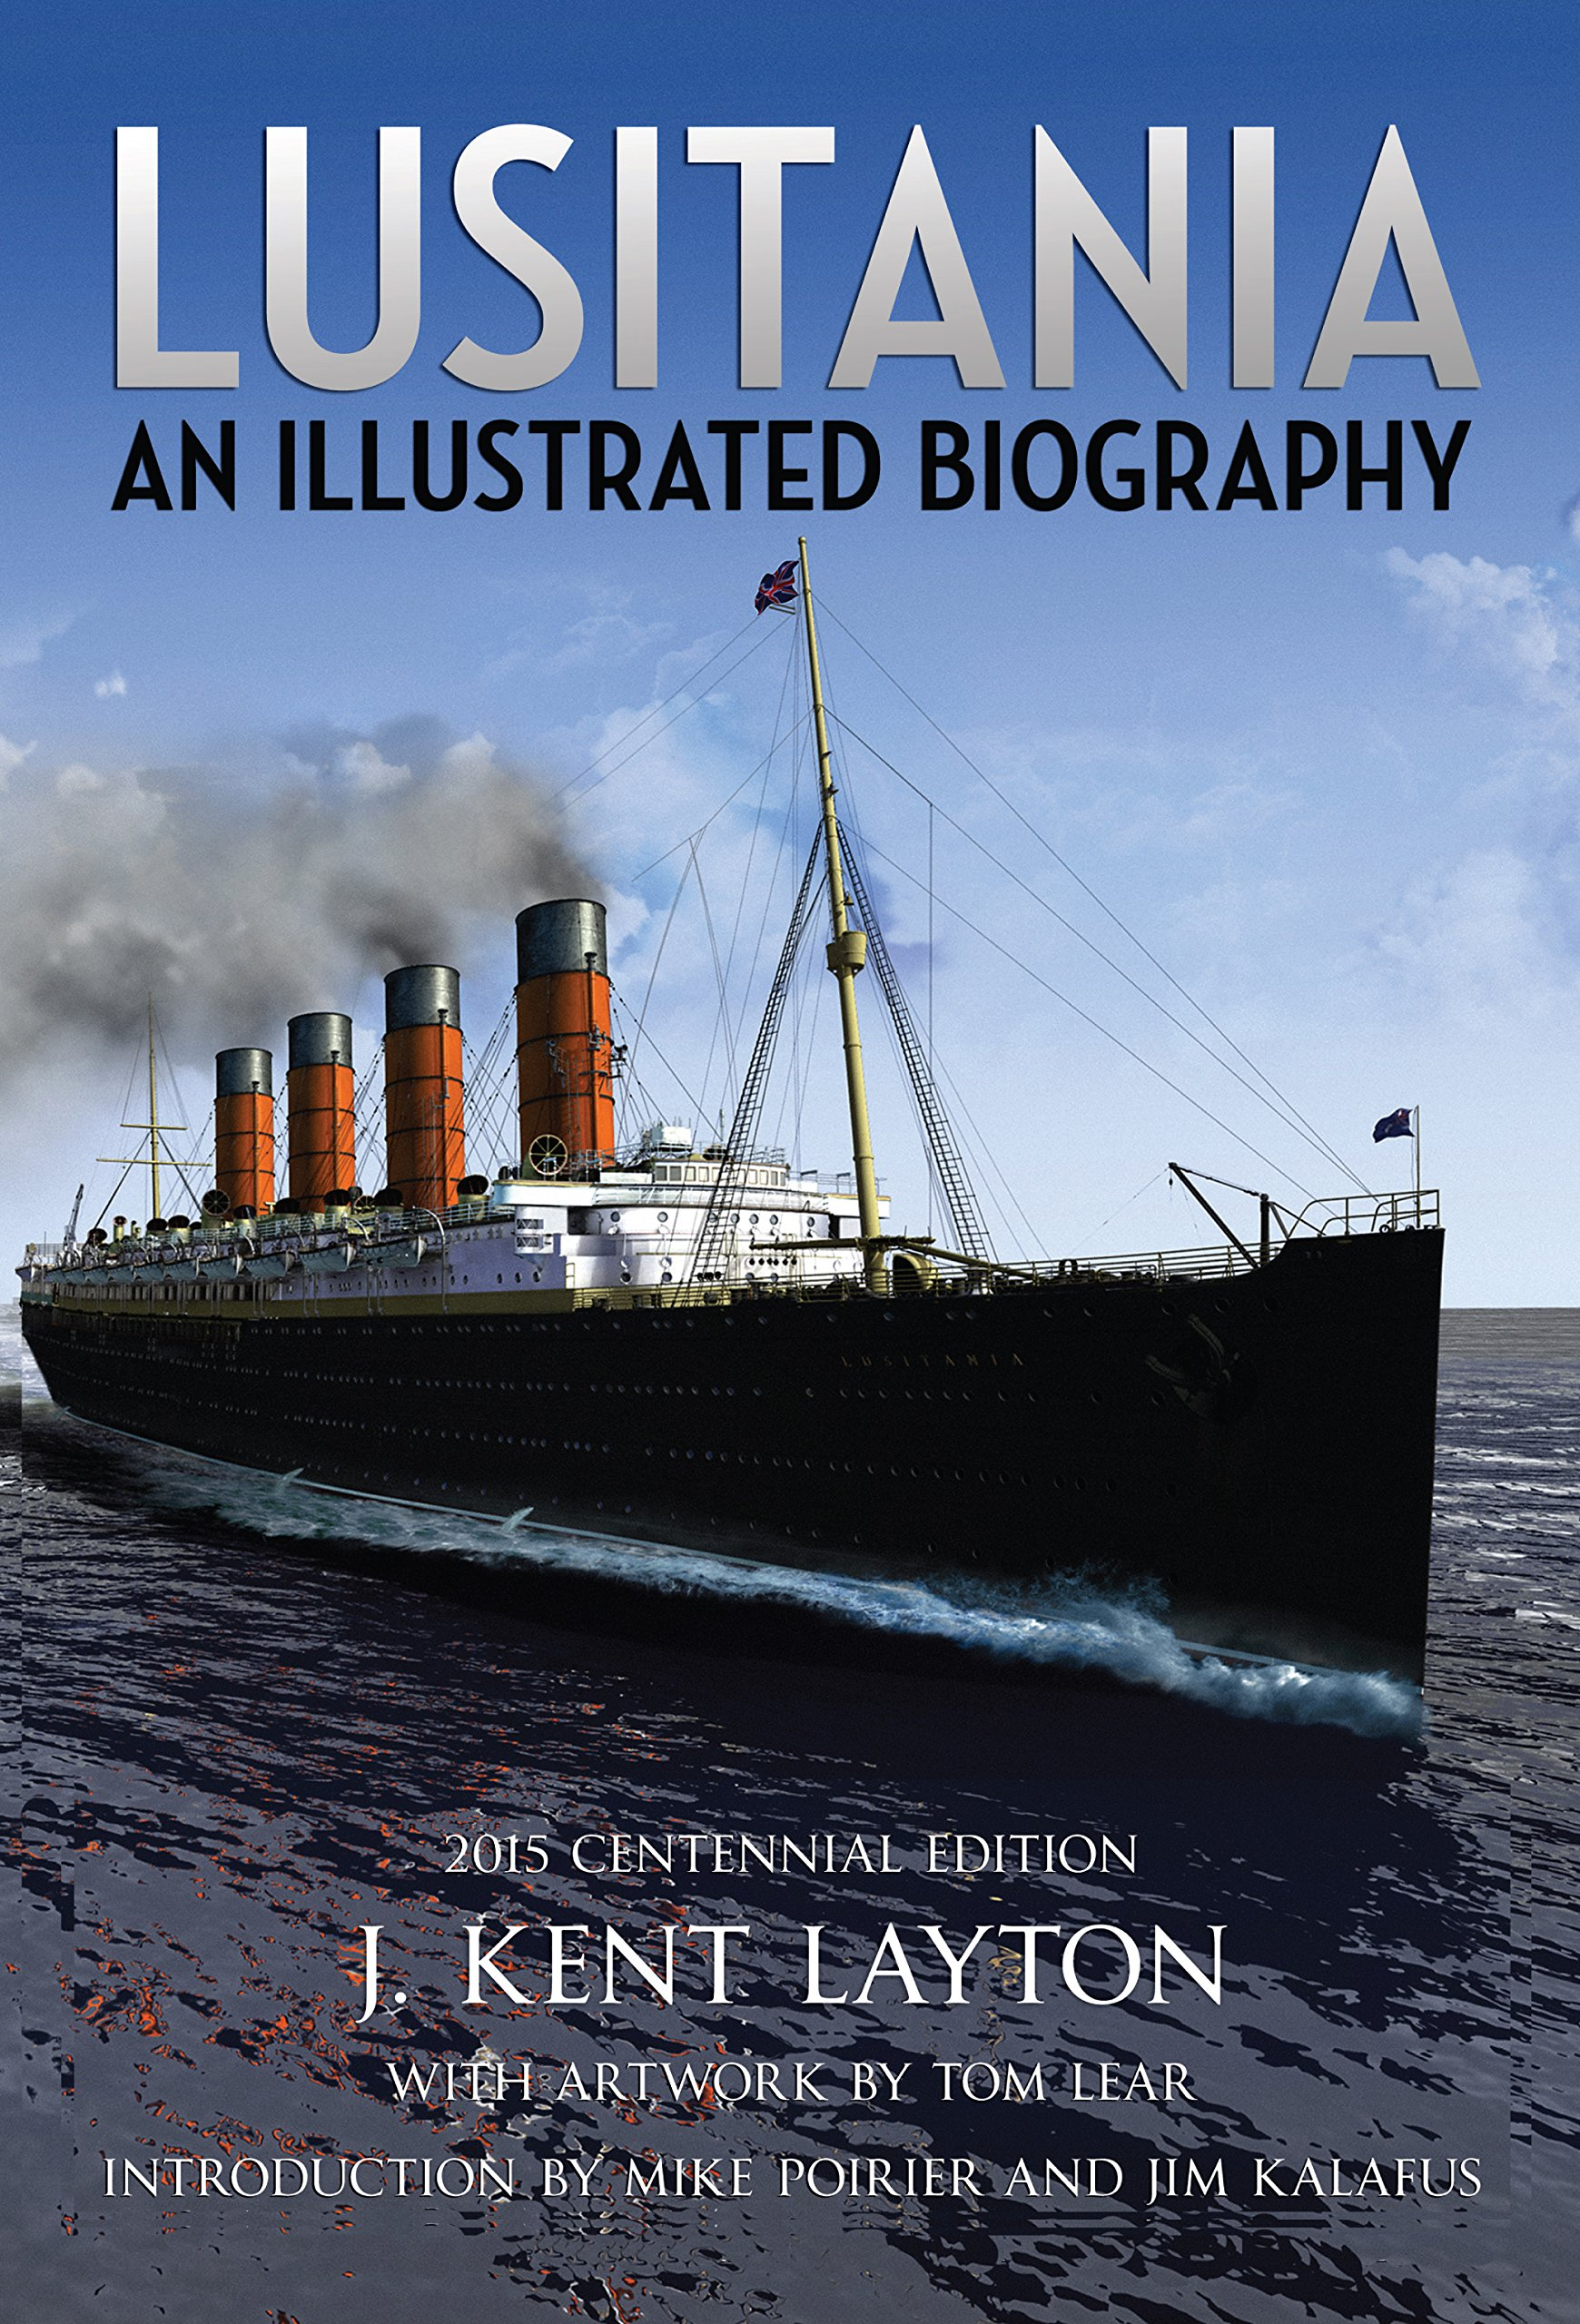 Lusitania: An Illustrated Biography [2015 Centennial Edn]